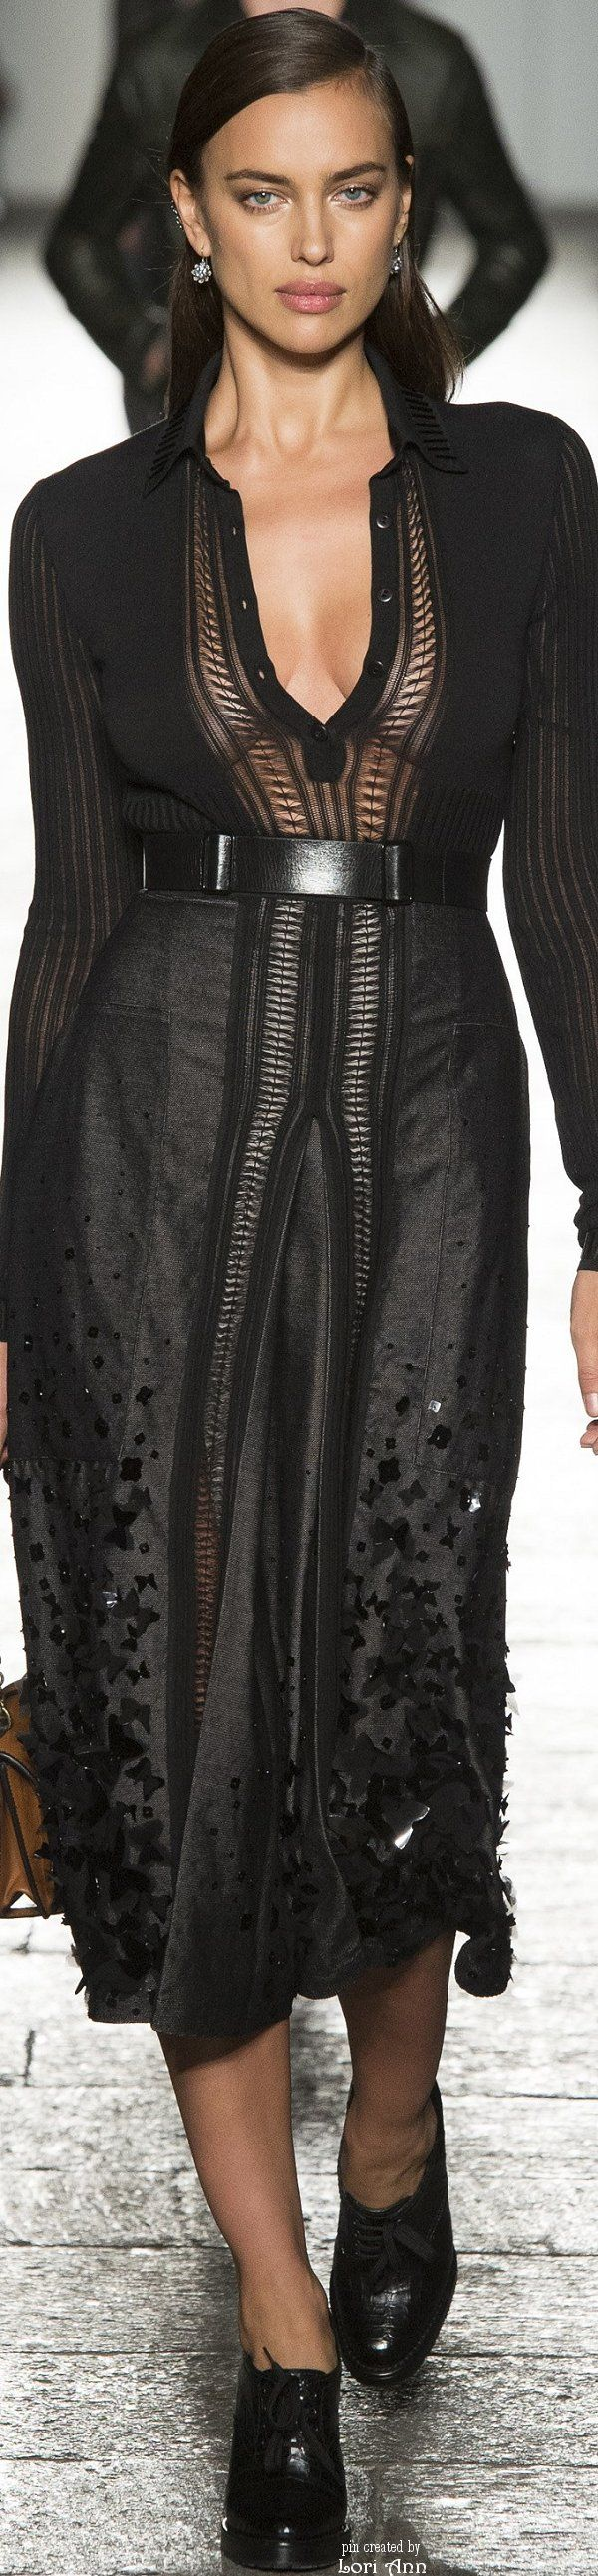 Bottega Veneta Spring 2017 RTW #Dress Longue Noire #black transparency